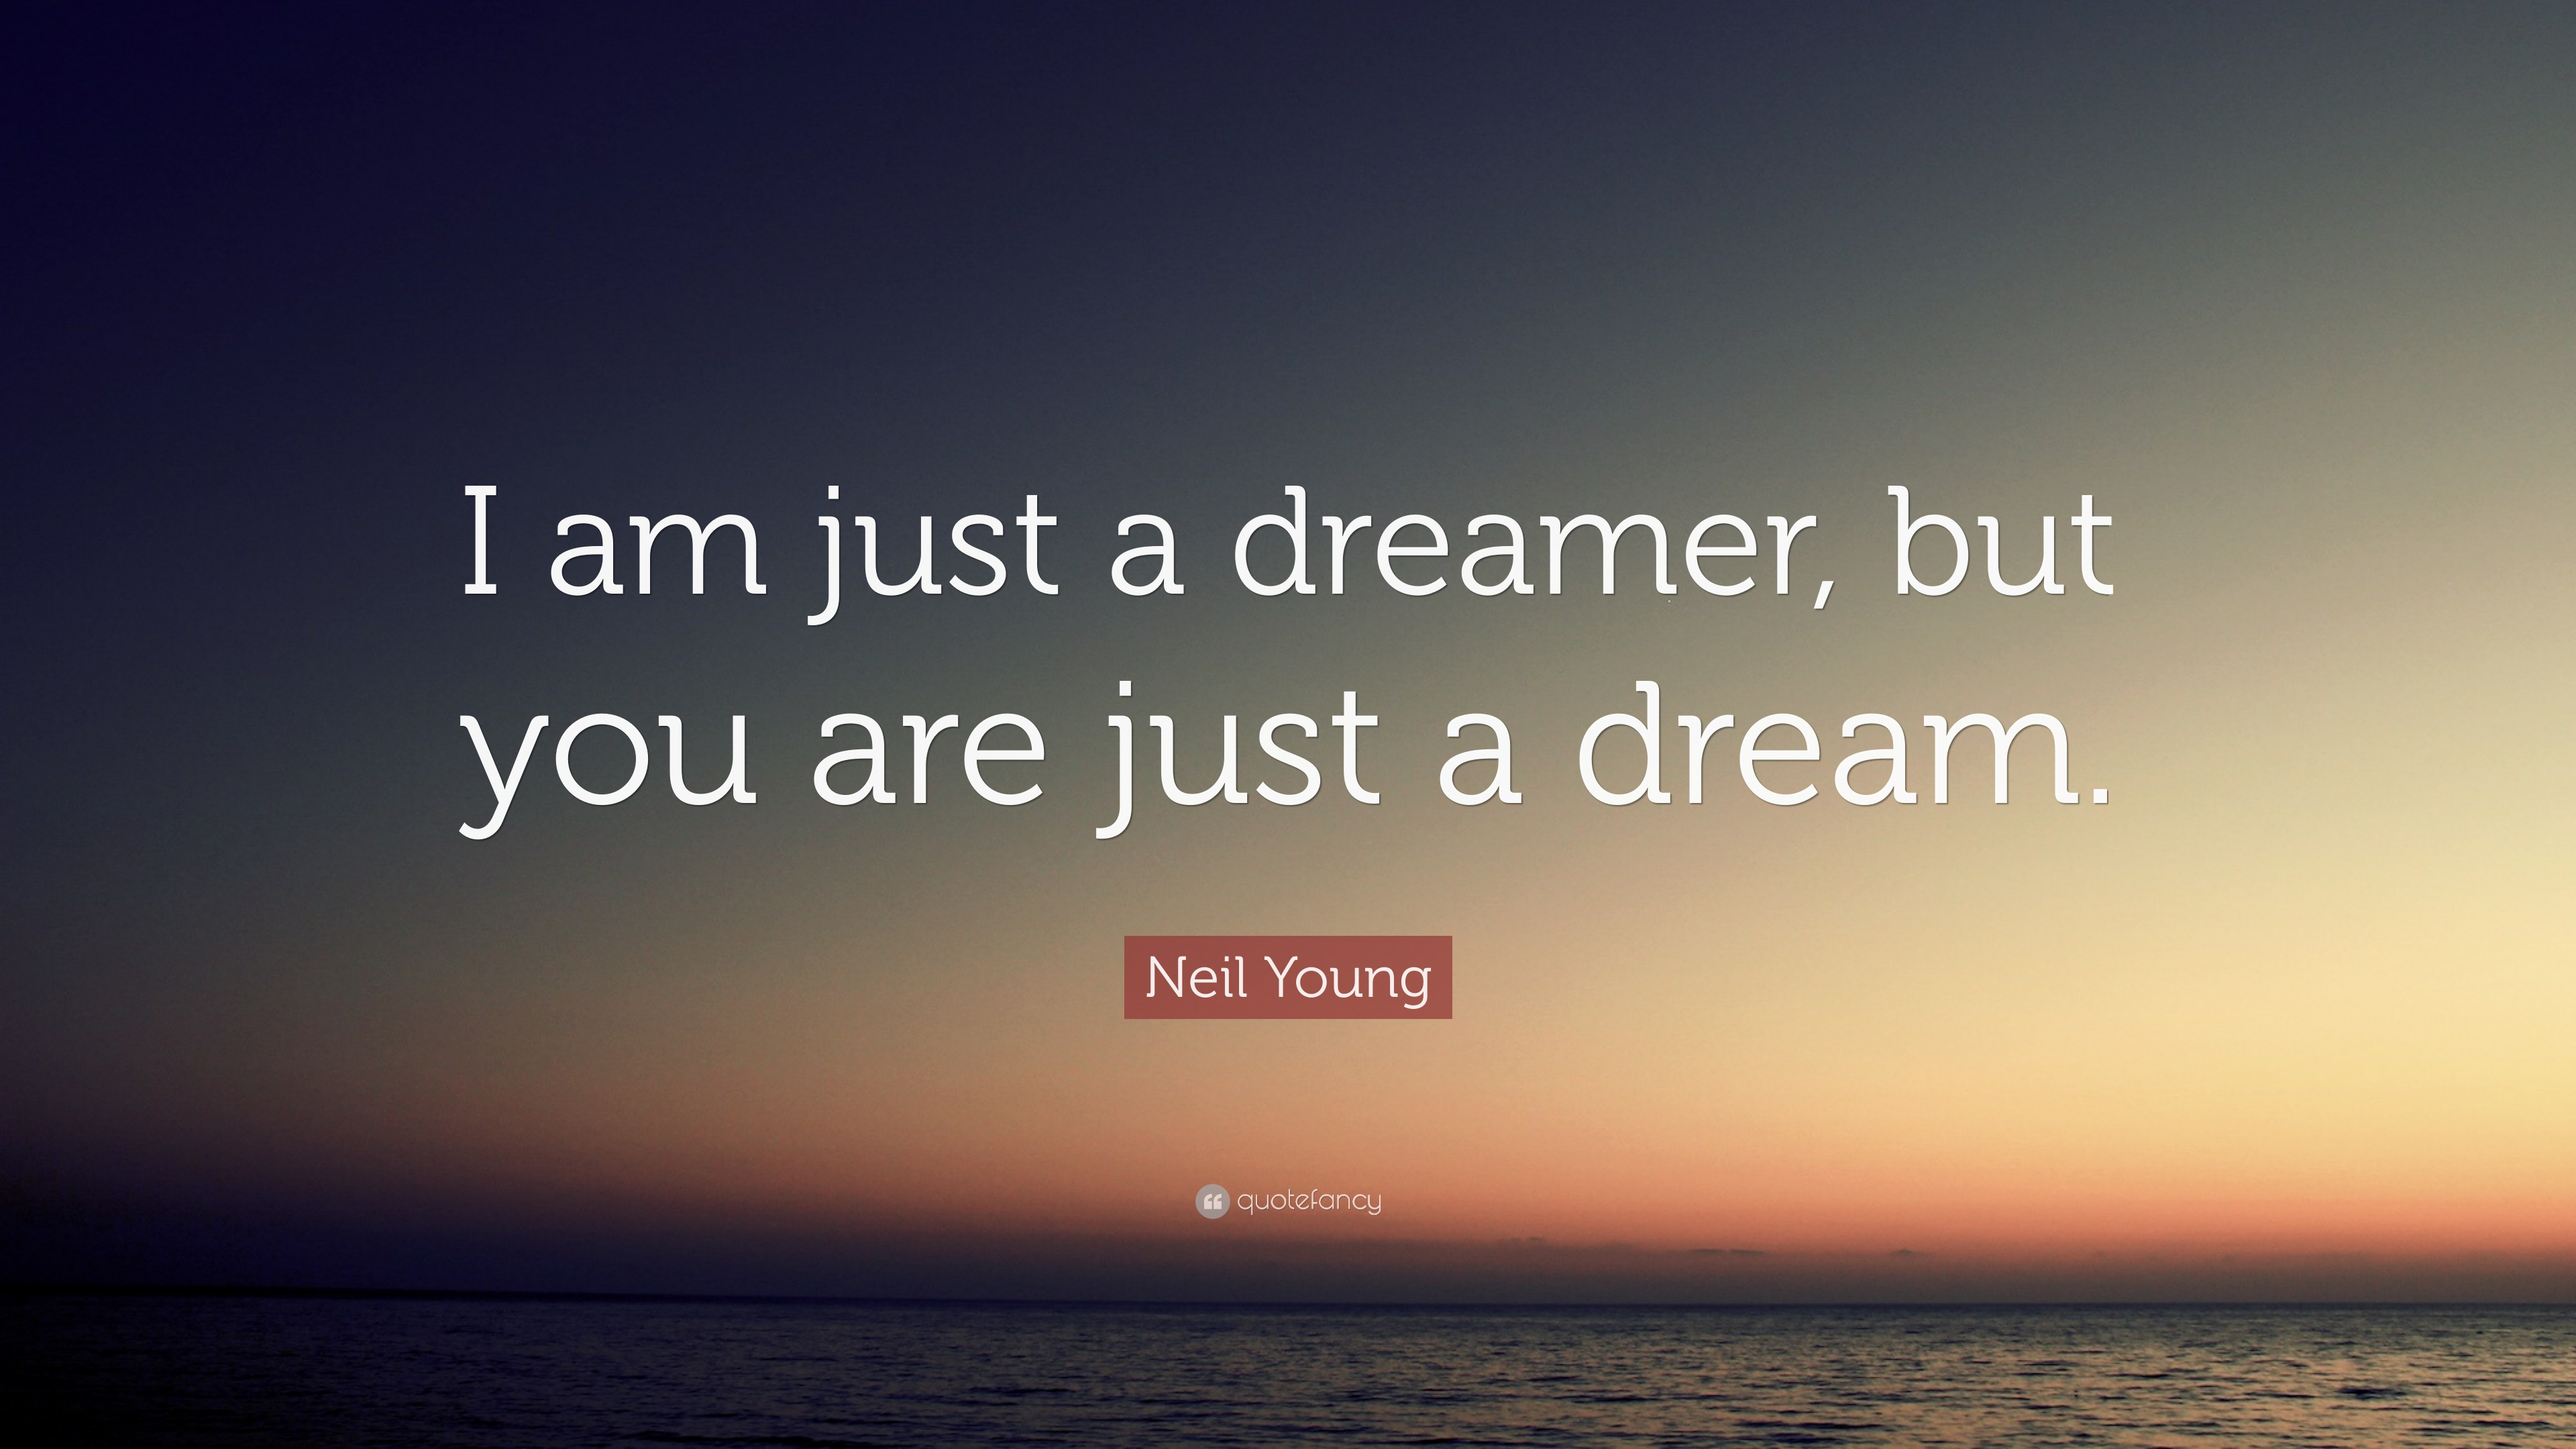 Neil Young Quote I Am Just A Dreamer But You Are Just A Dream